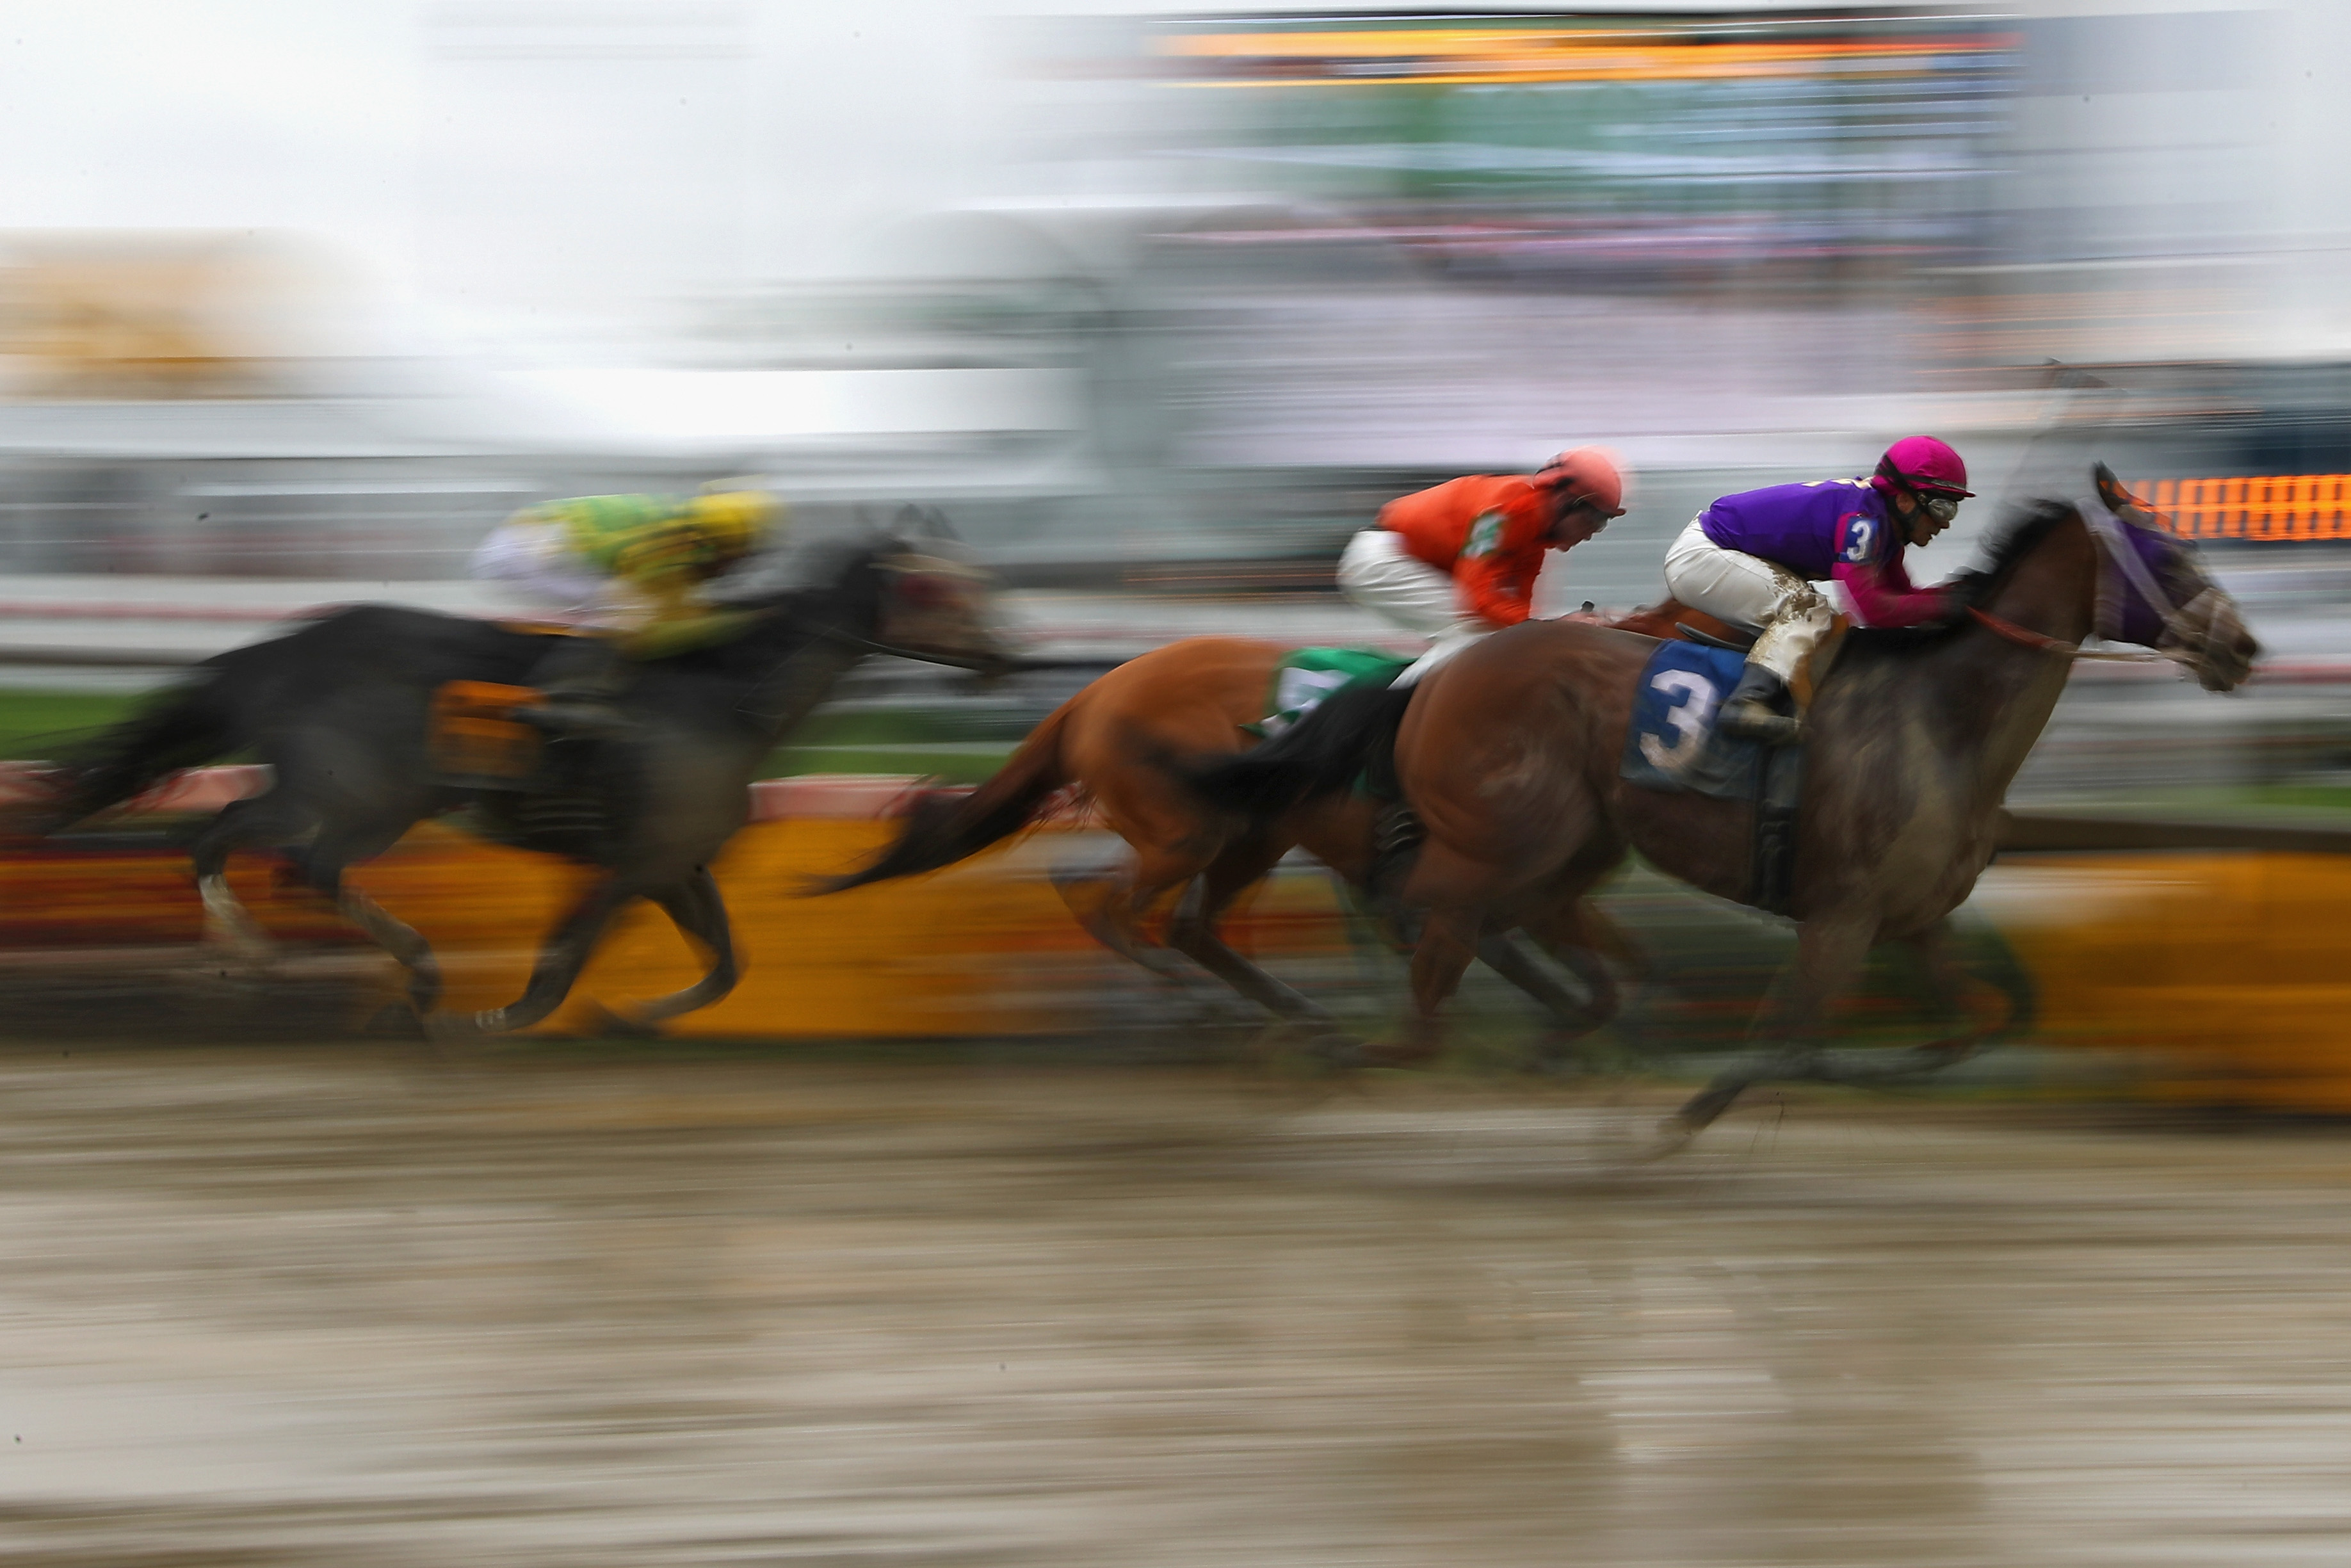 Preakness 2016: Two horses die in early races at Pimlico